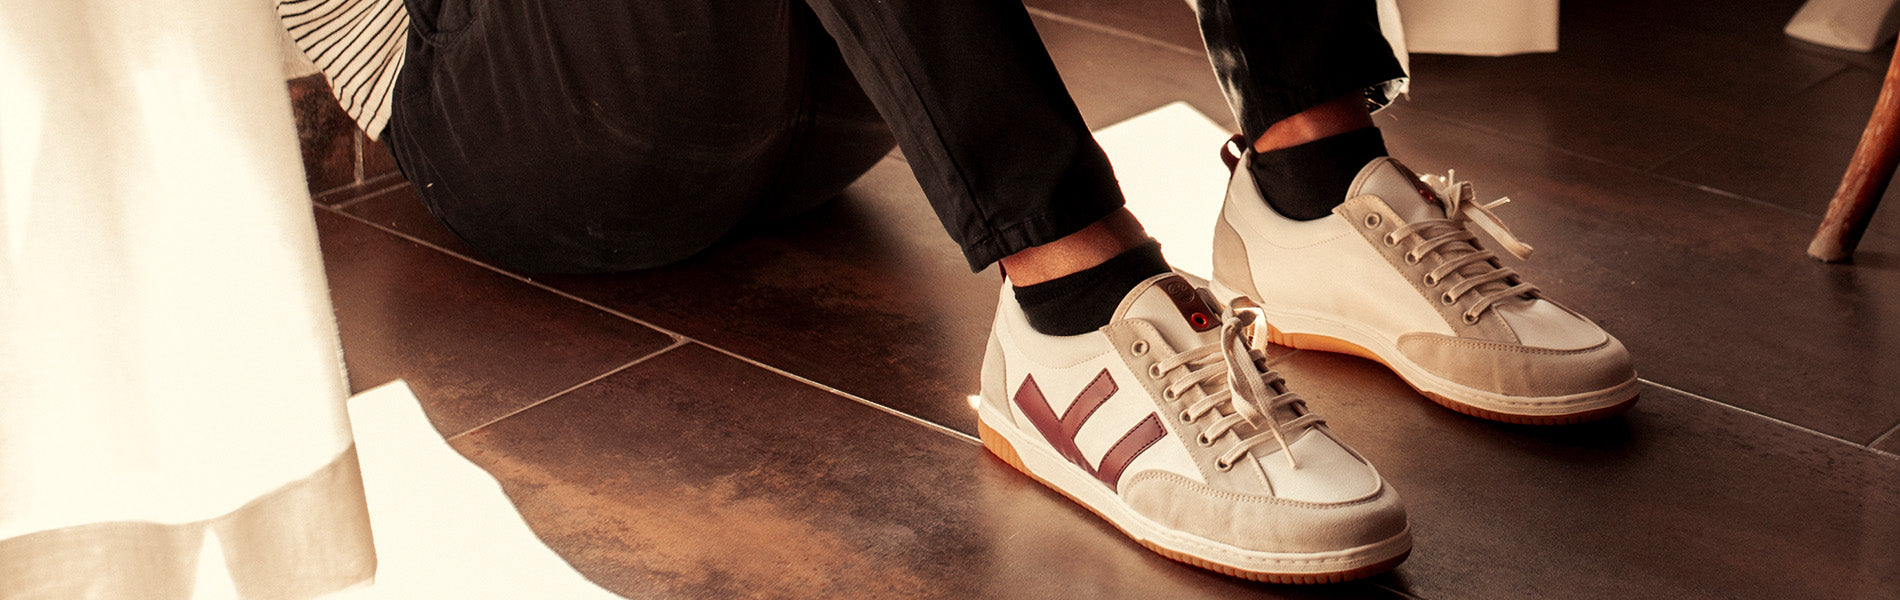 Sneakers - ROLAND BURGUNDY MARFIL